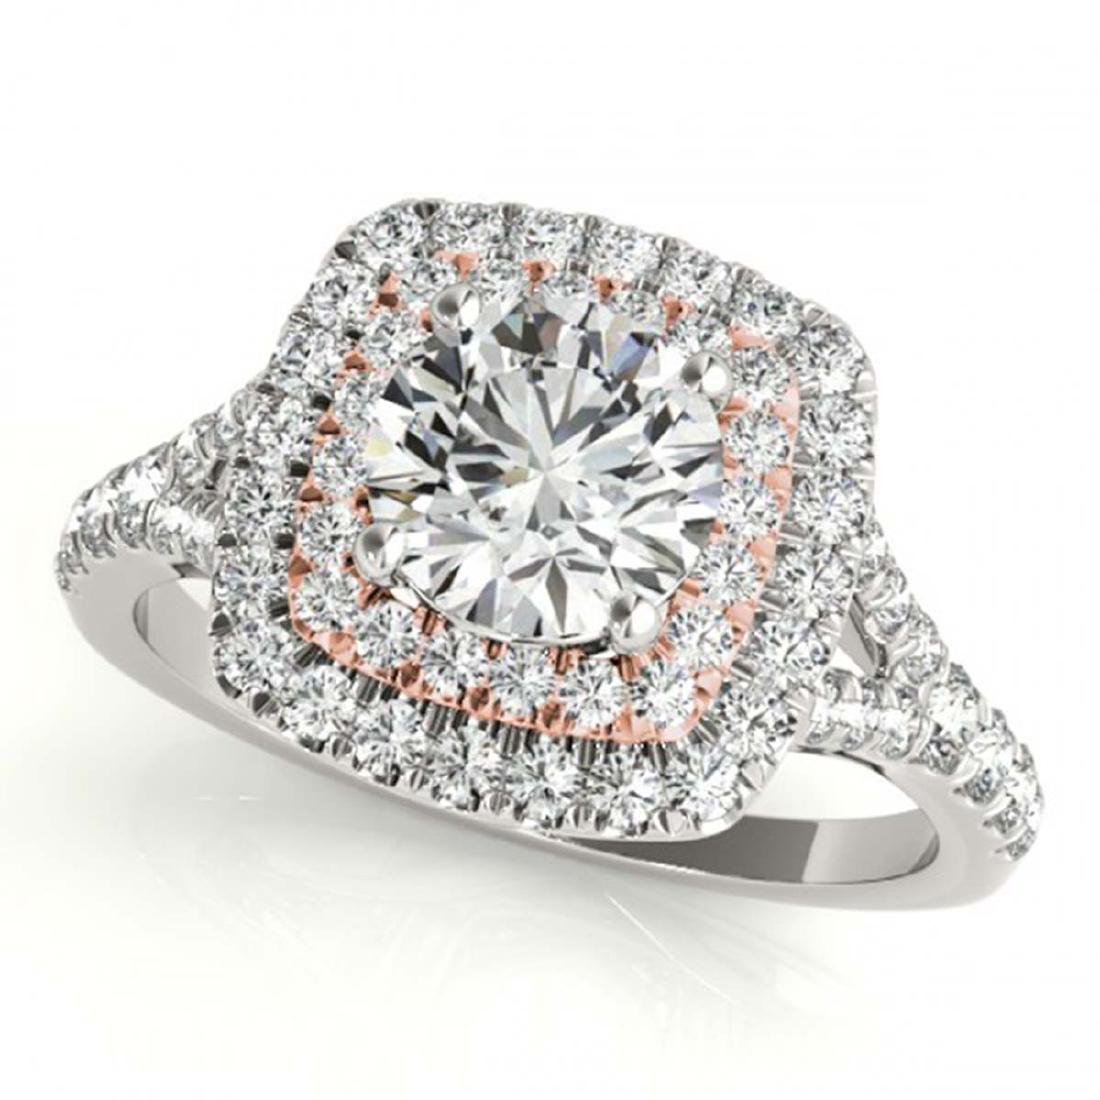 1.60 ctw VS/SI Diamond Solitaire Halo Ring 18K White &